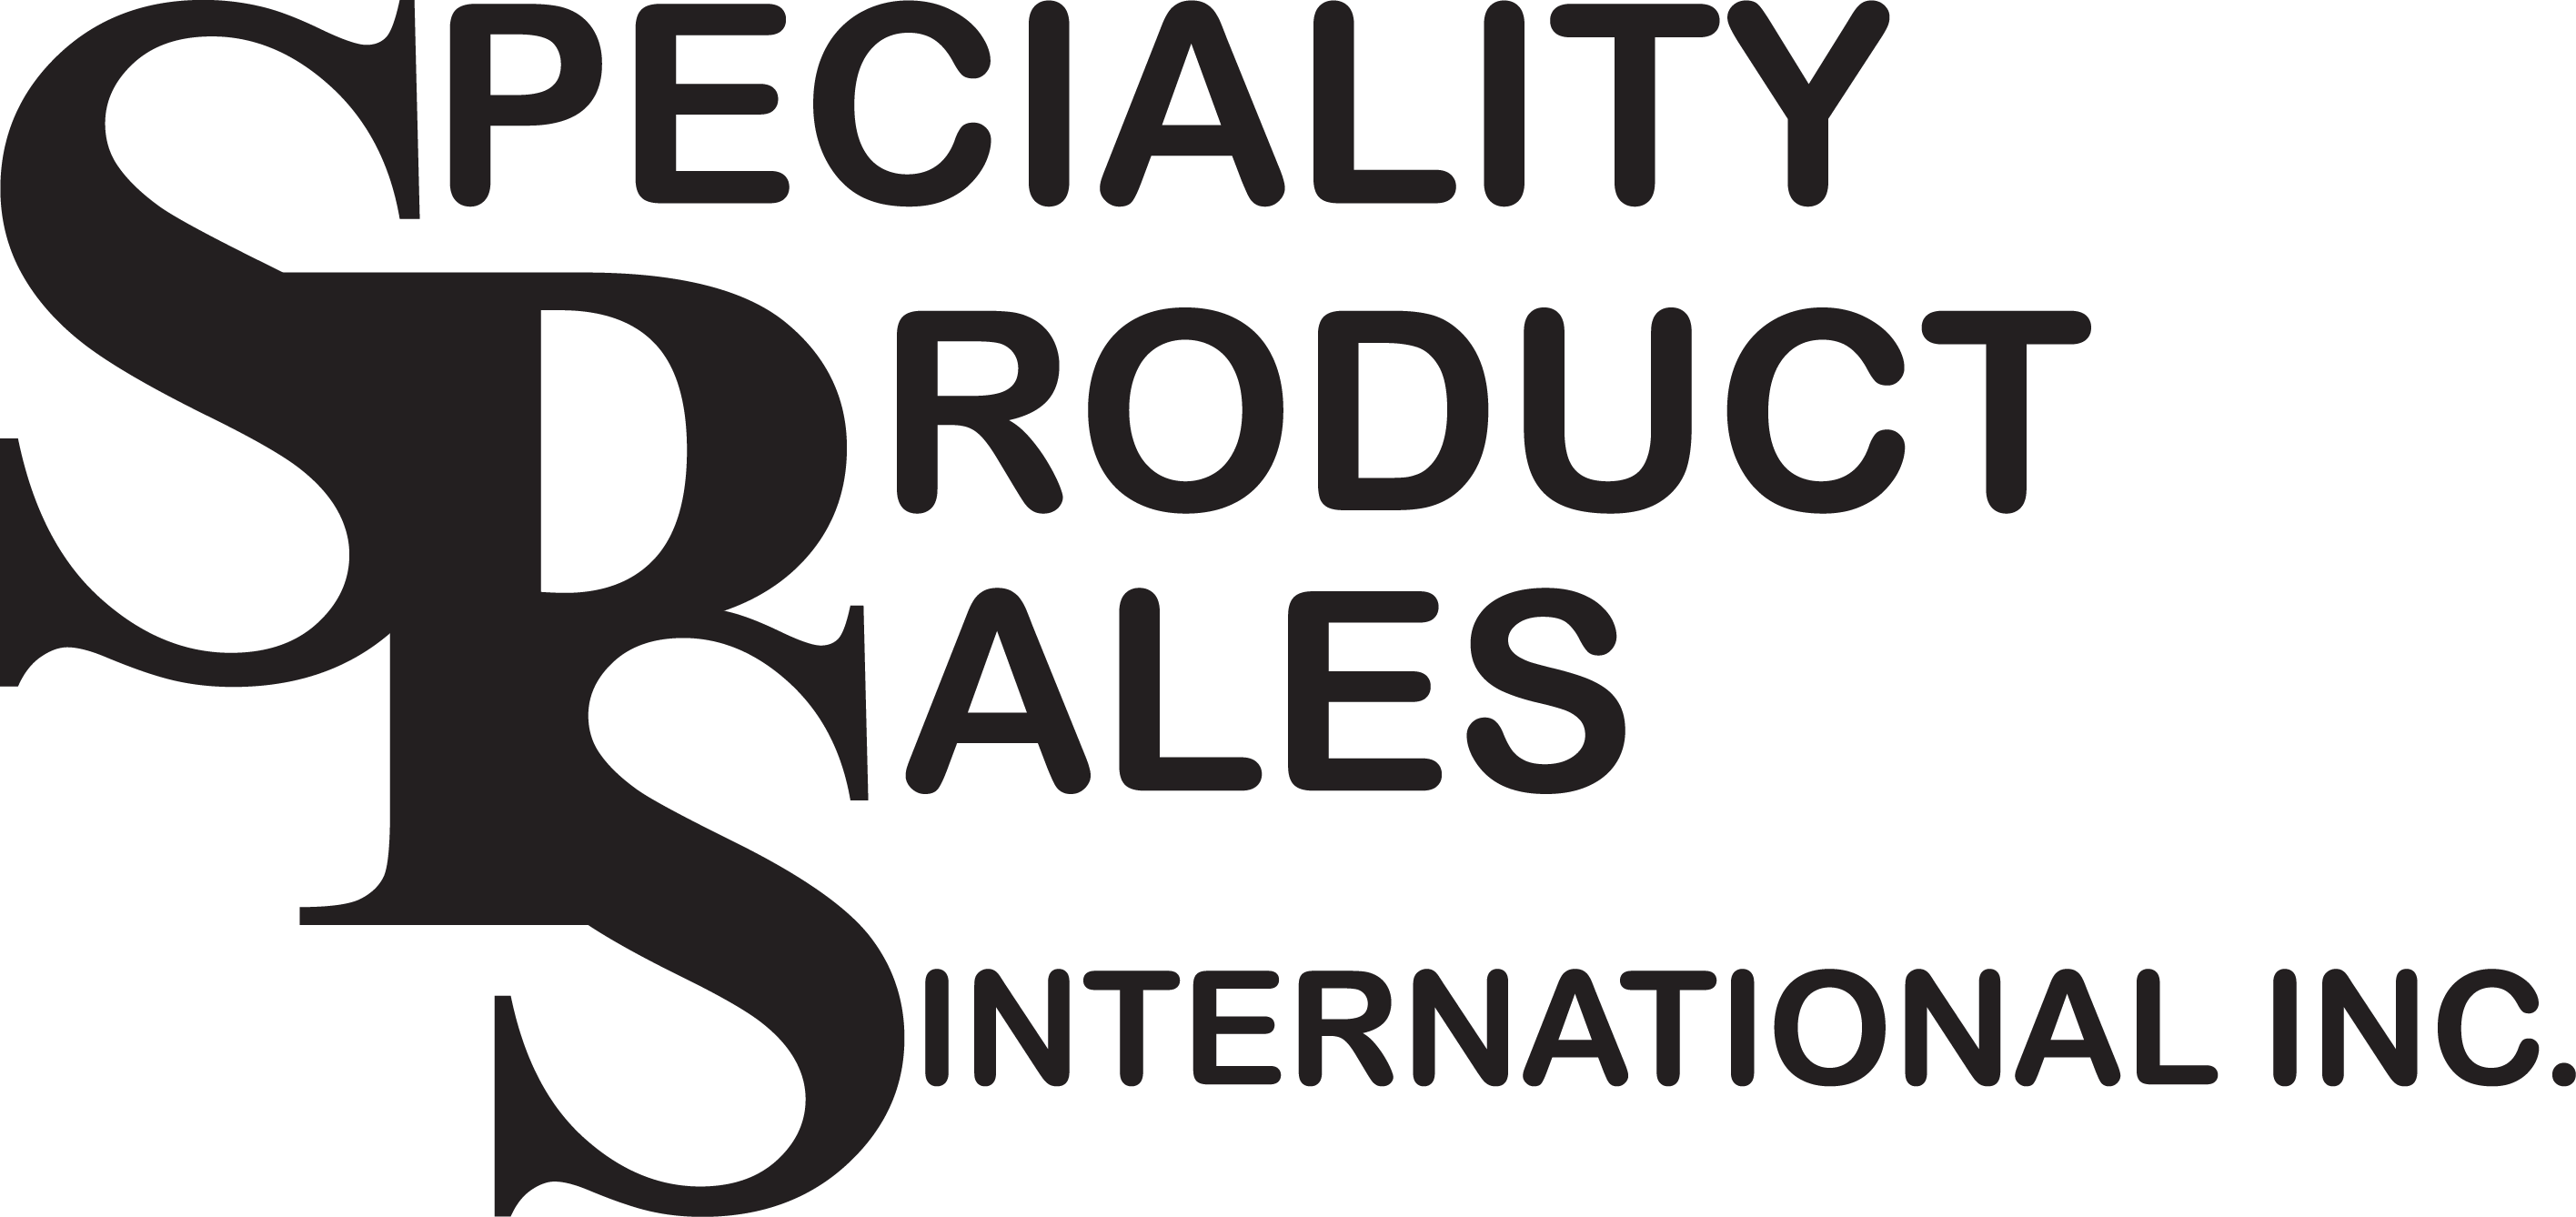 Speciality Product Sales